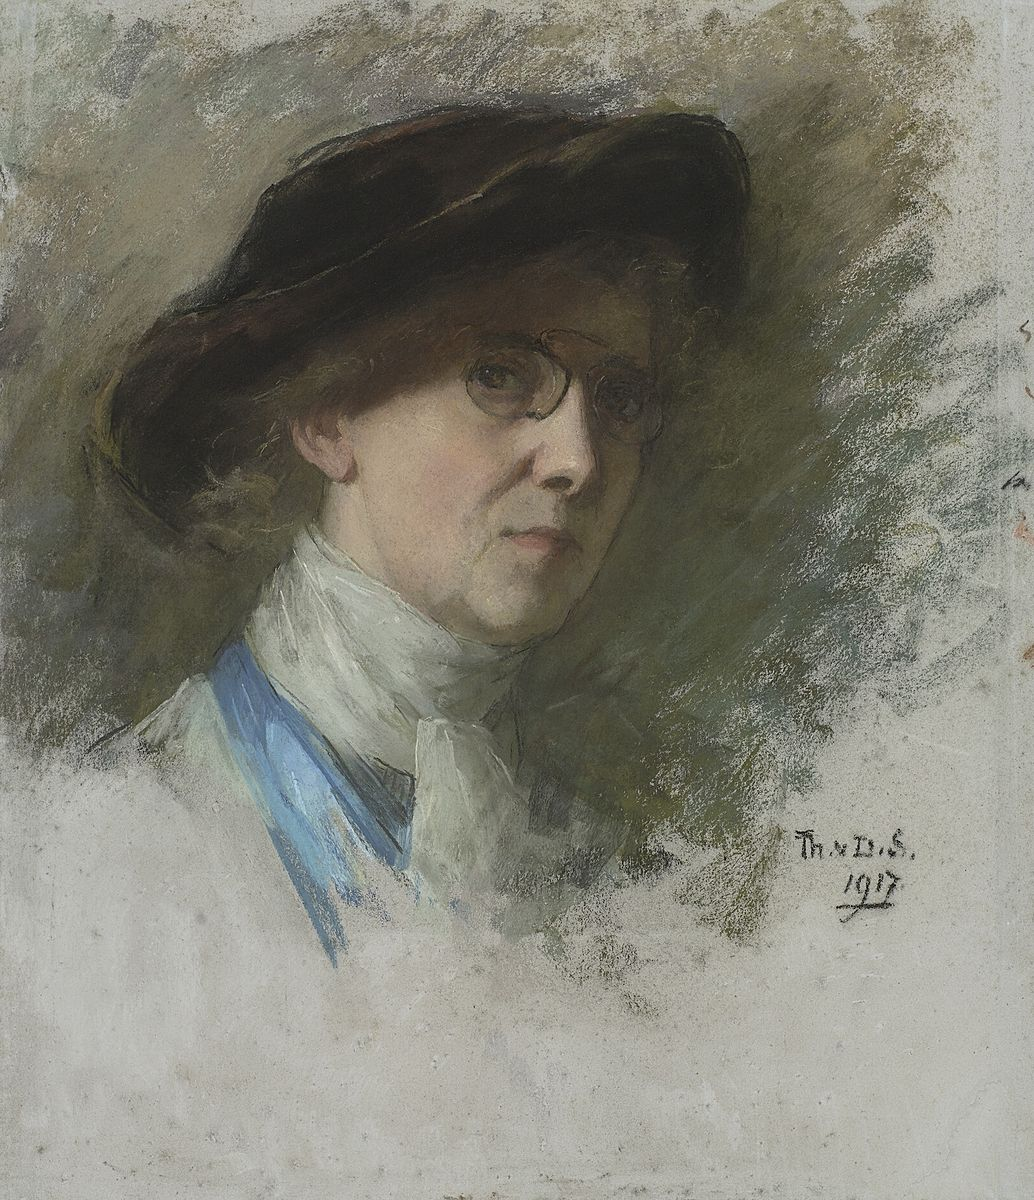 Self-portrait with black hat and glasses, 1917	 Pastel on paper, 55 cm x 47 cm	 Rijksmuseum, Amsterdam View full size